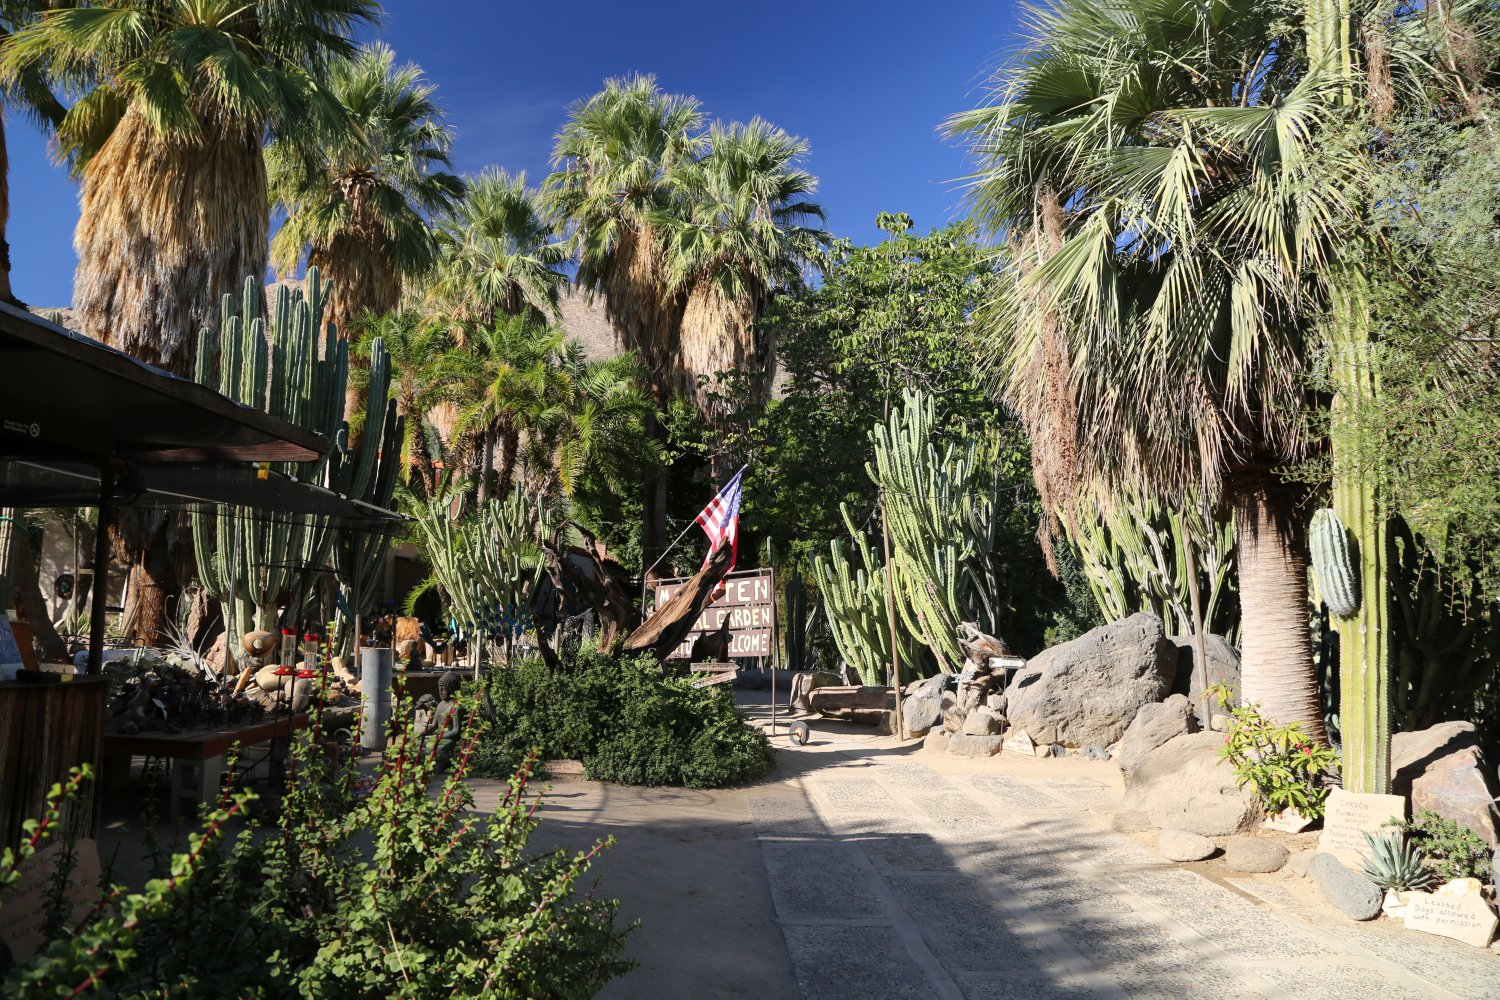 Agua Caliente Cultural Museum Preserves The Past, Present, And Future  History Of The Aqua Caliente Indians. It Is Located At 219 South Palm  Canyon Drive On ...